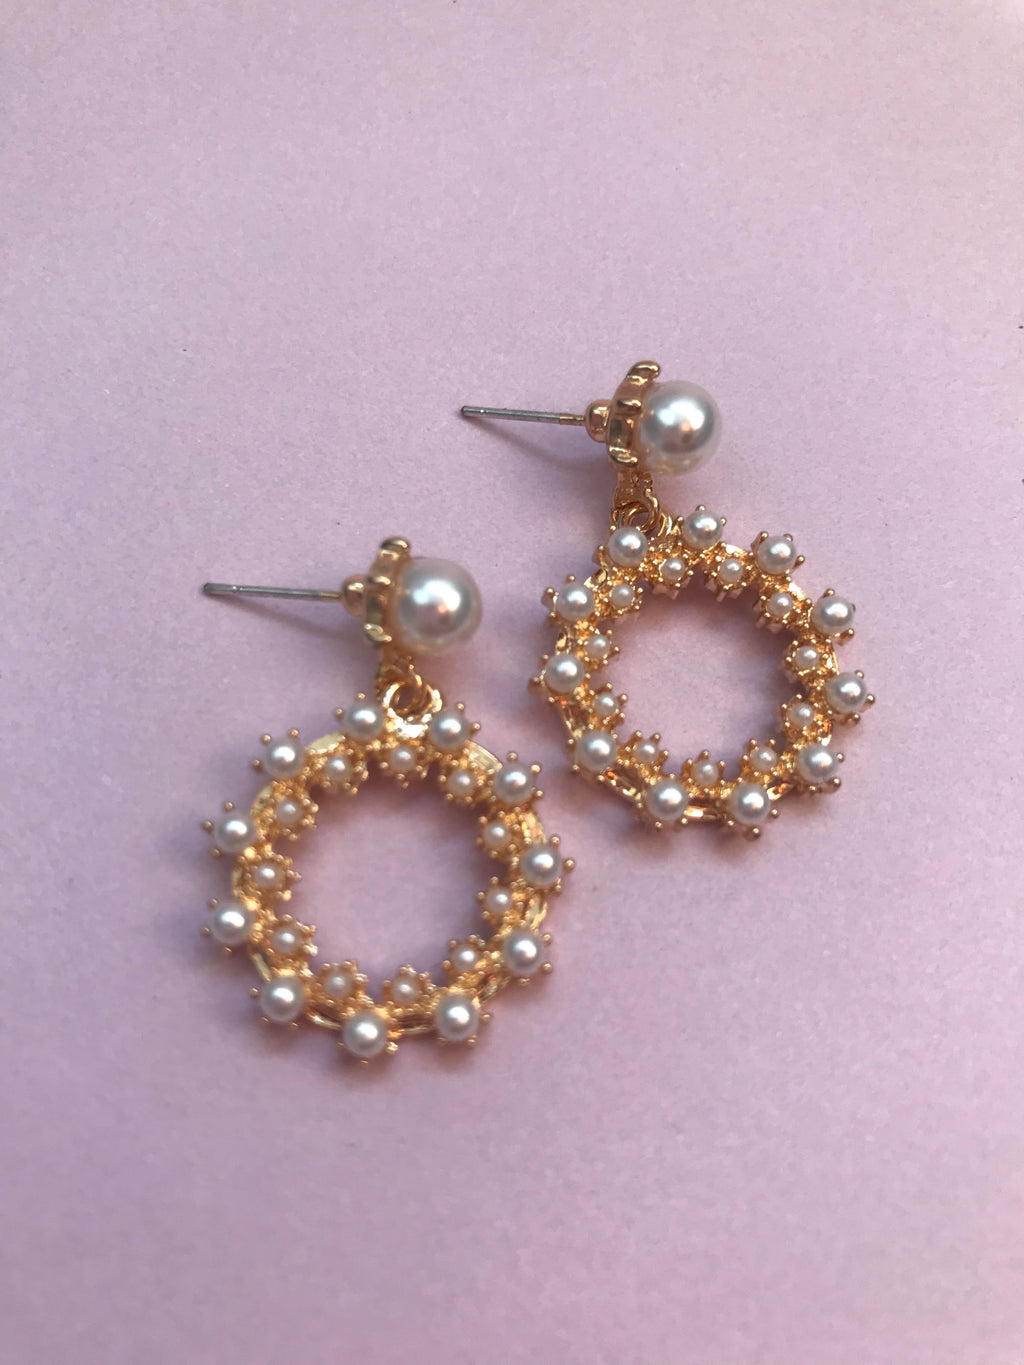 THE SIENNA GOLD HOOP EARRINGS